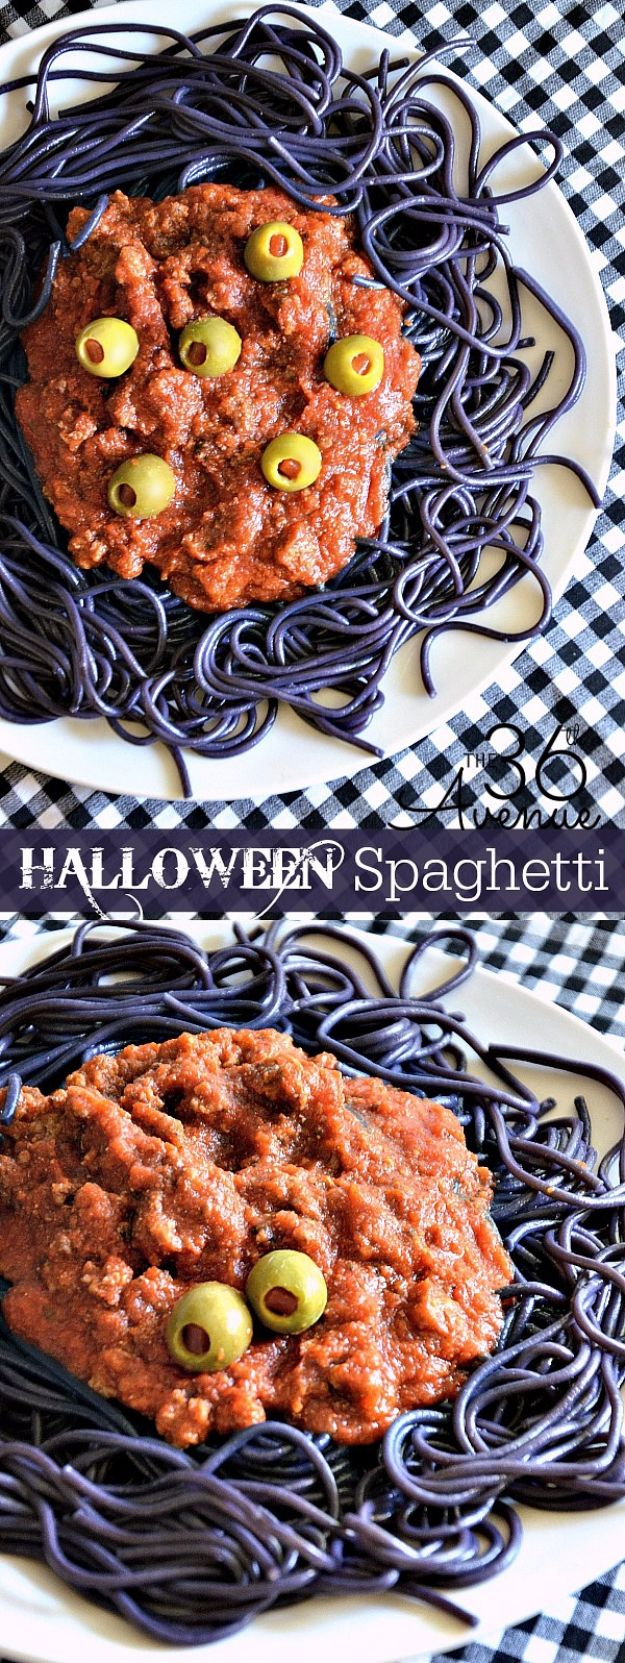 Best Halloween Party Snacks - Halloween Spaghetti - Healthy Ideas for Kids for School, Teens and Adults - Easy and Quick Recipes and Idea for Dips, Chips, Spooky Cookies and Treats - Appetizers and Finger Foods Made With Vegetables, No Candy, Cheap Food, Scary DIY Party Foods With Step by Step Tutorials #halloween #halloweenrecipes #halloweenparty